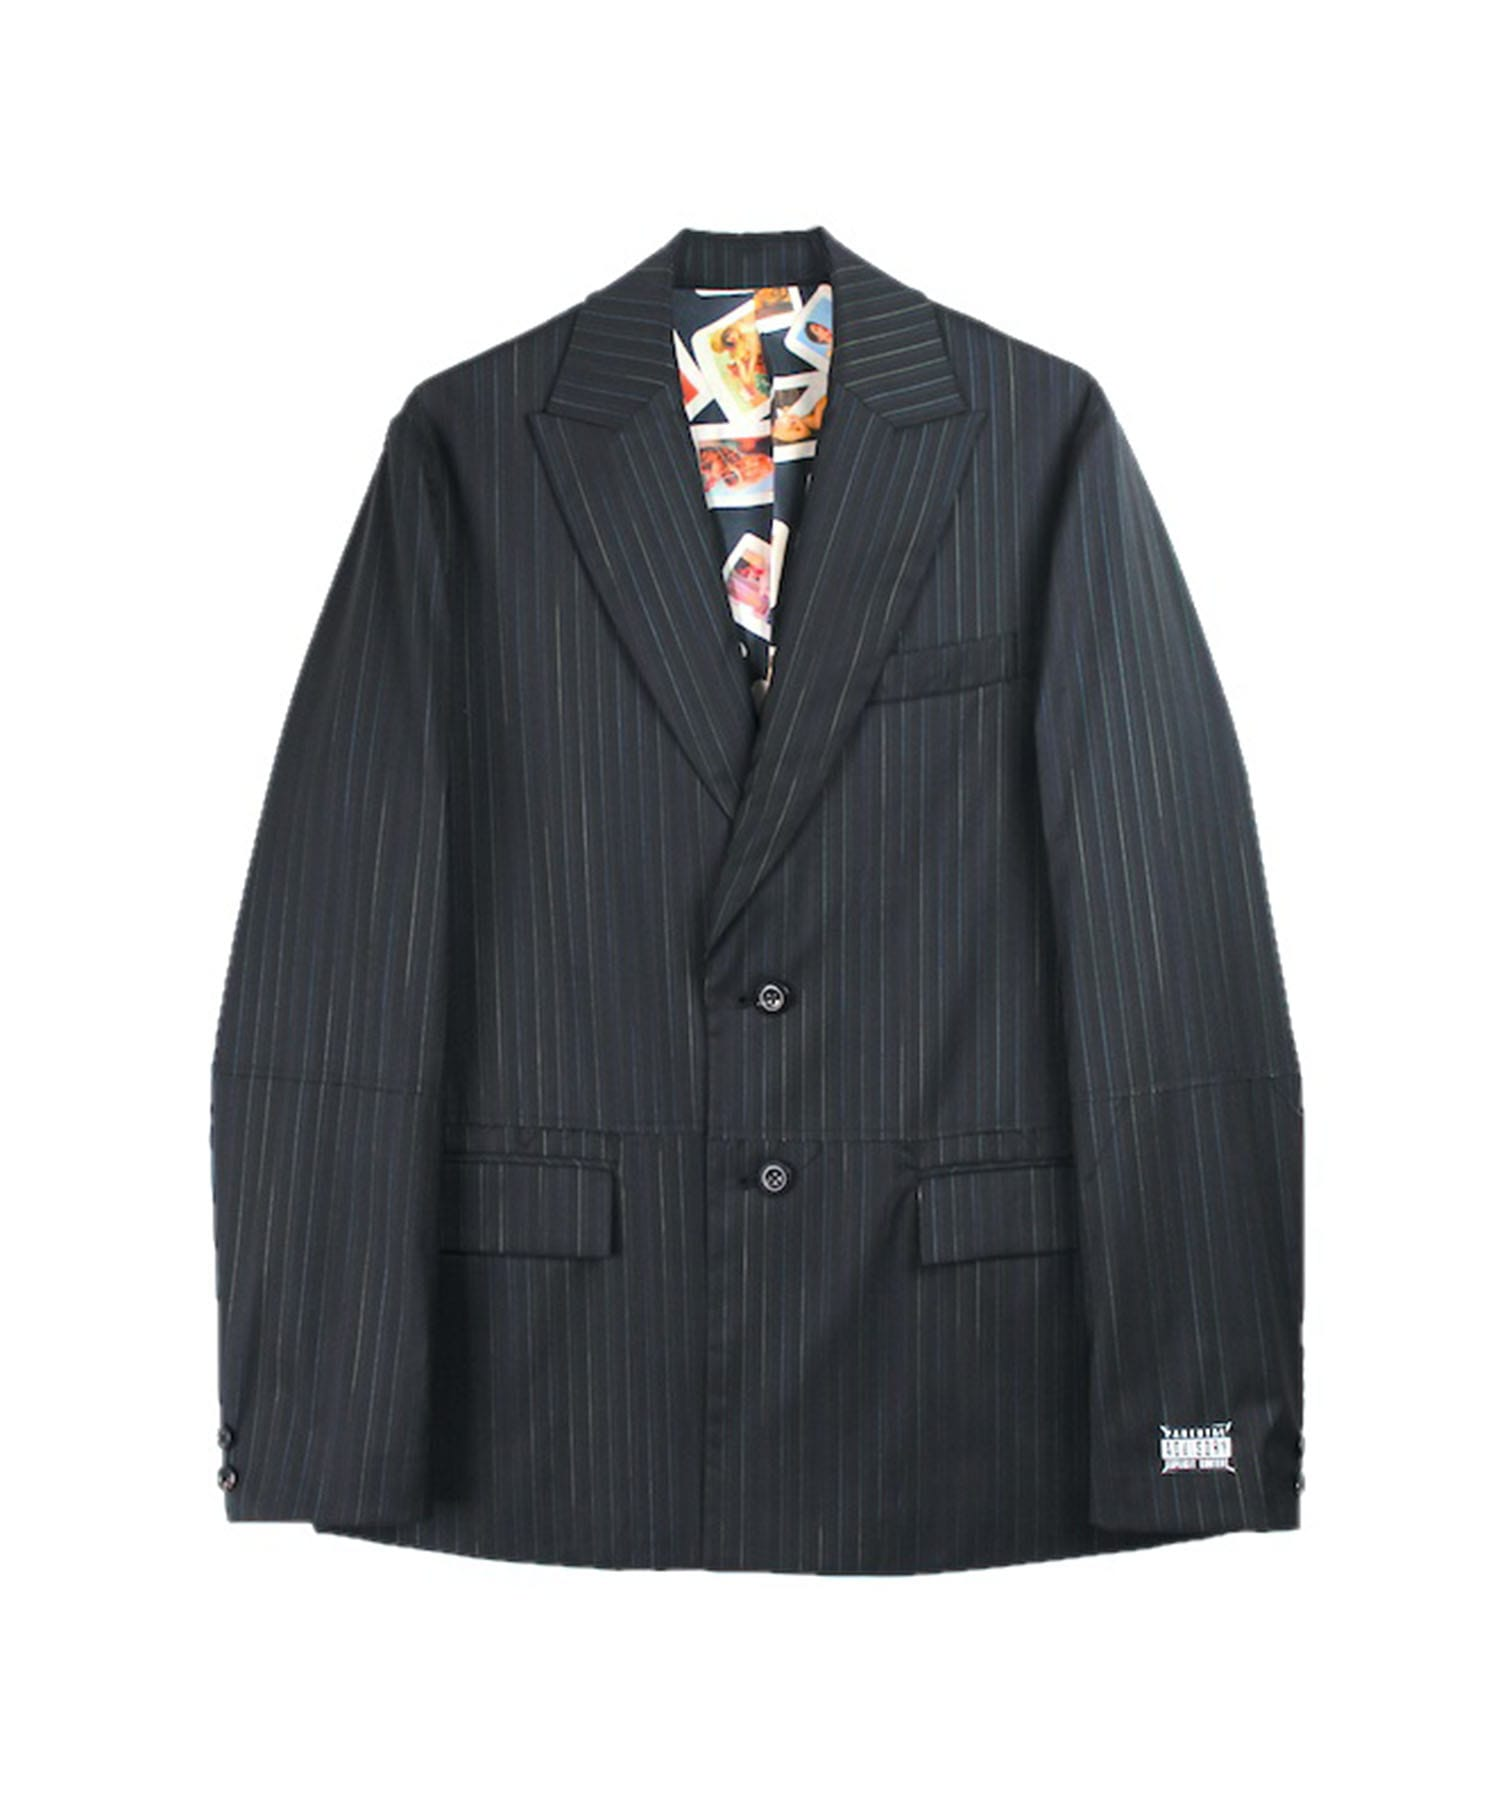 CUT OFF TAILORED JACKET